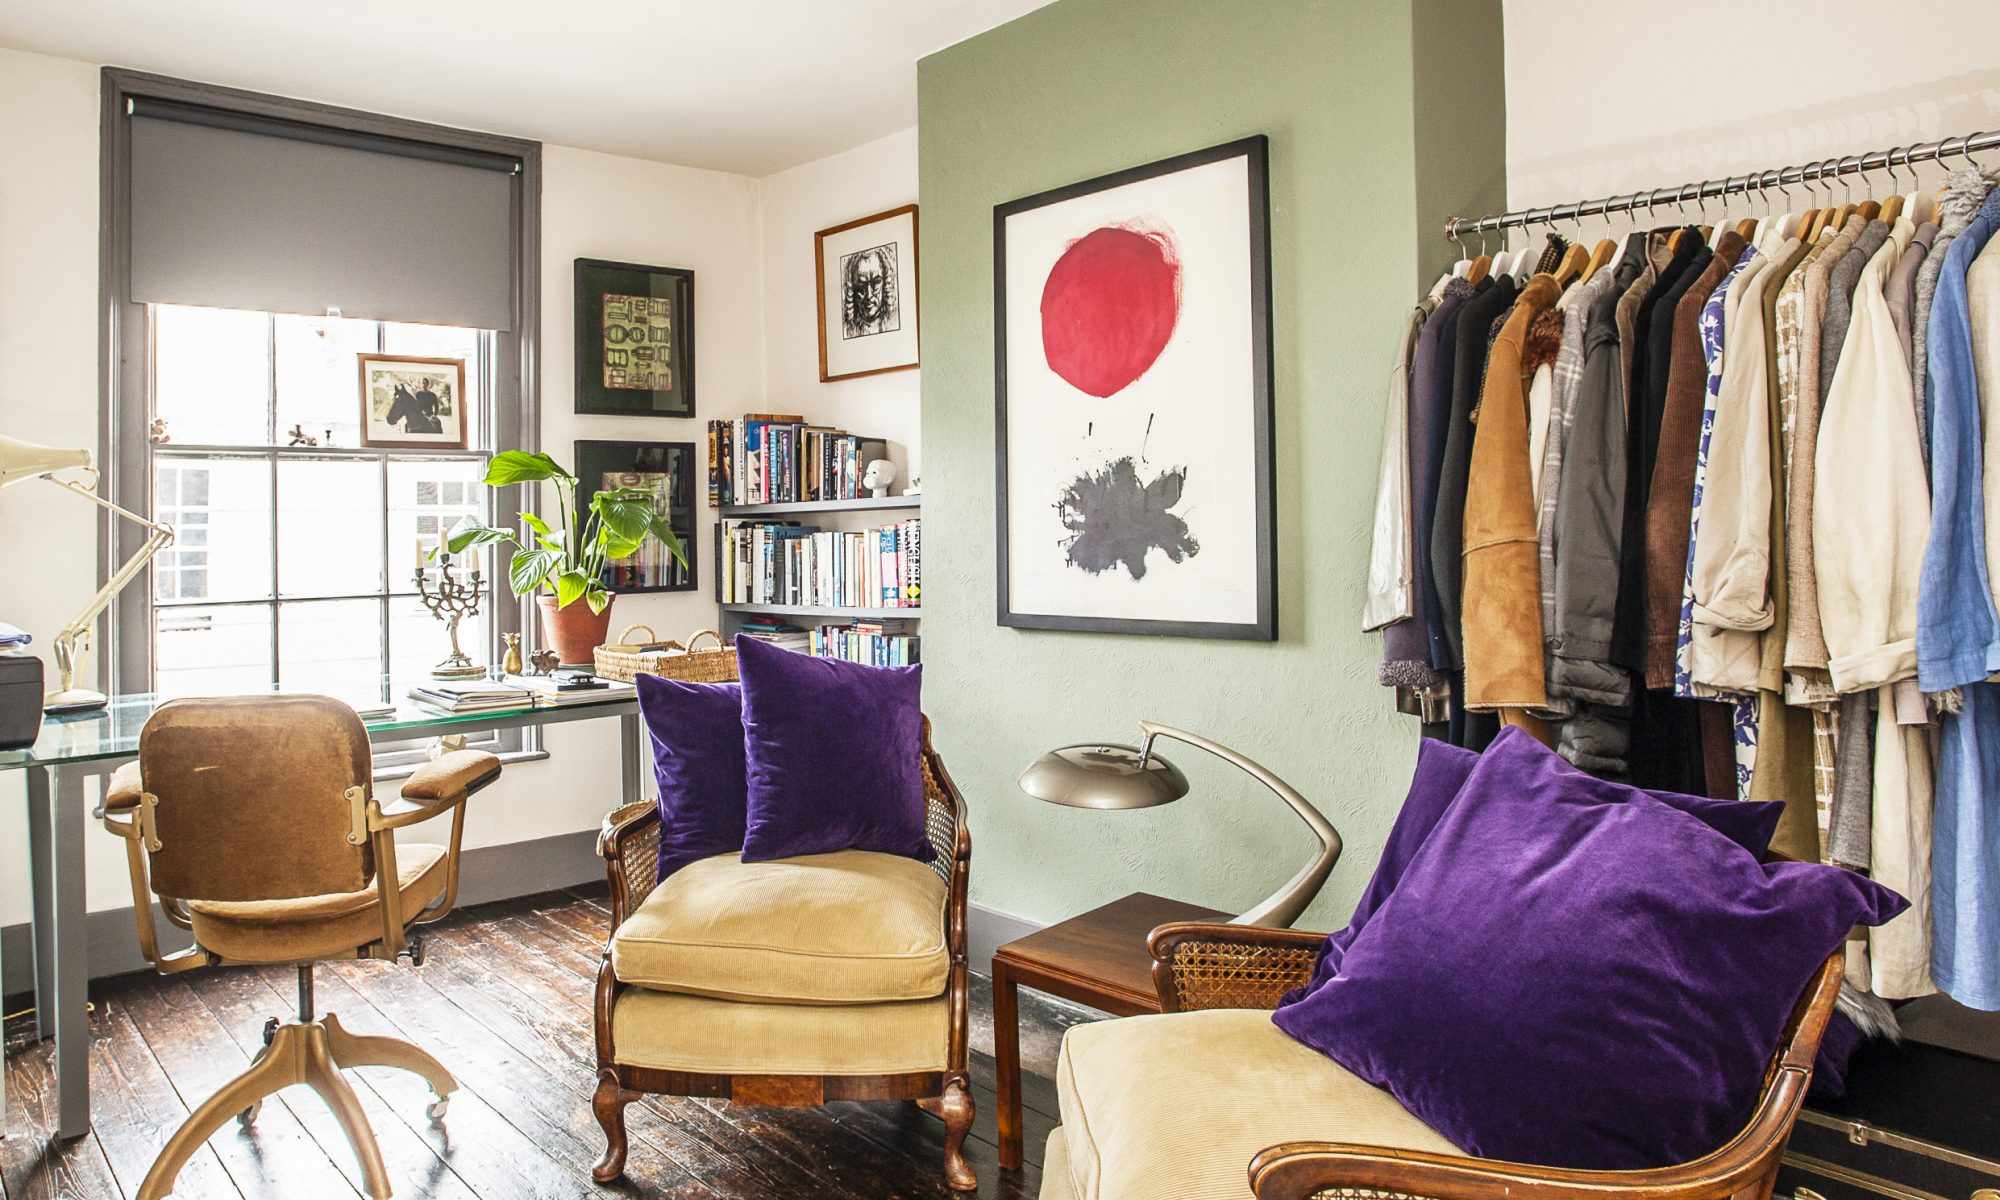 Anthropology, Arabic, art history… the lady of this house is erudite, well-read and widely travelled and it shows at every turn